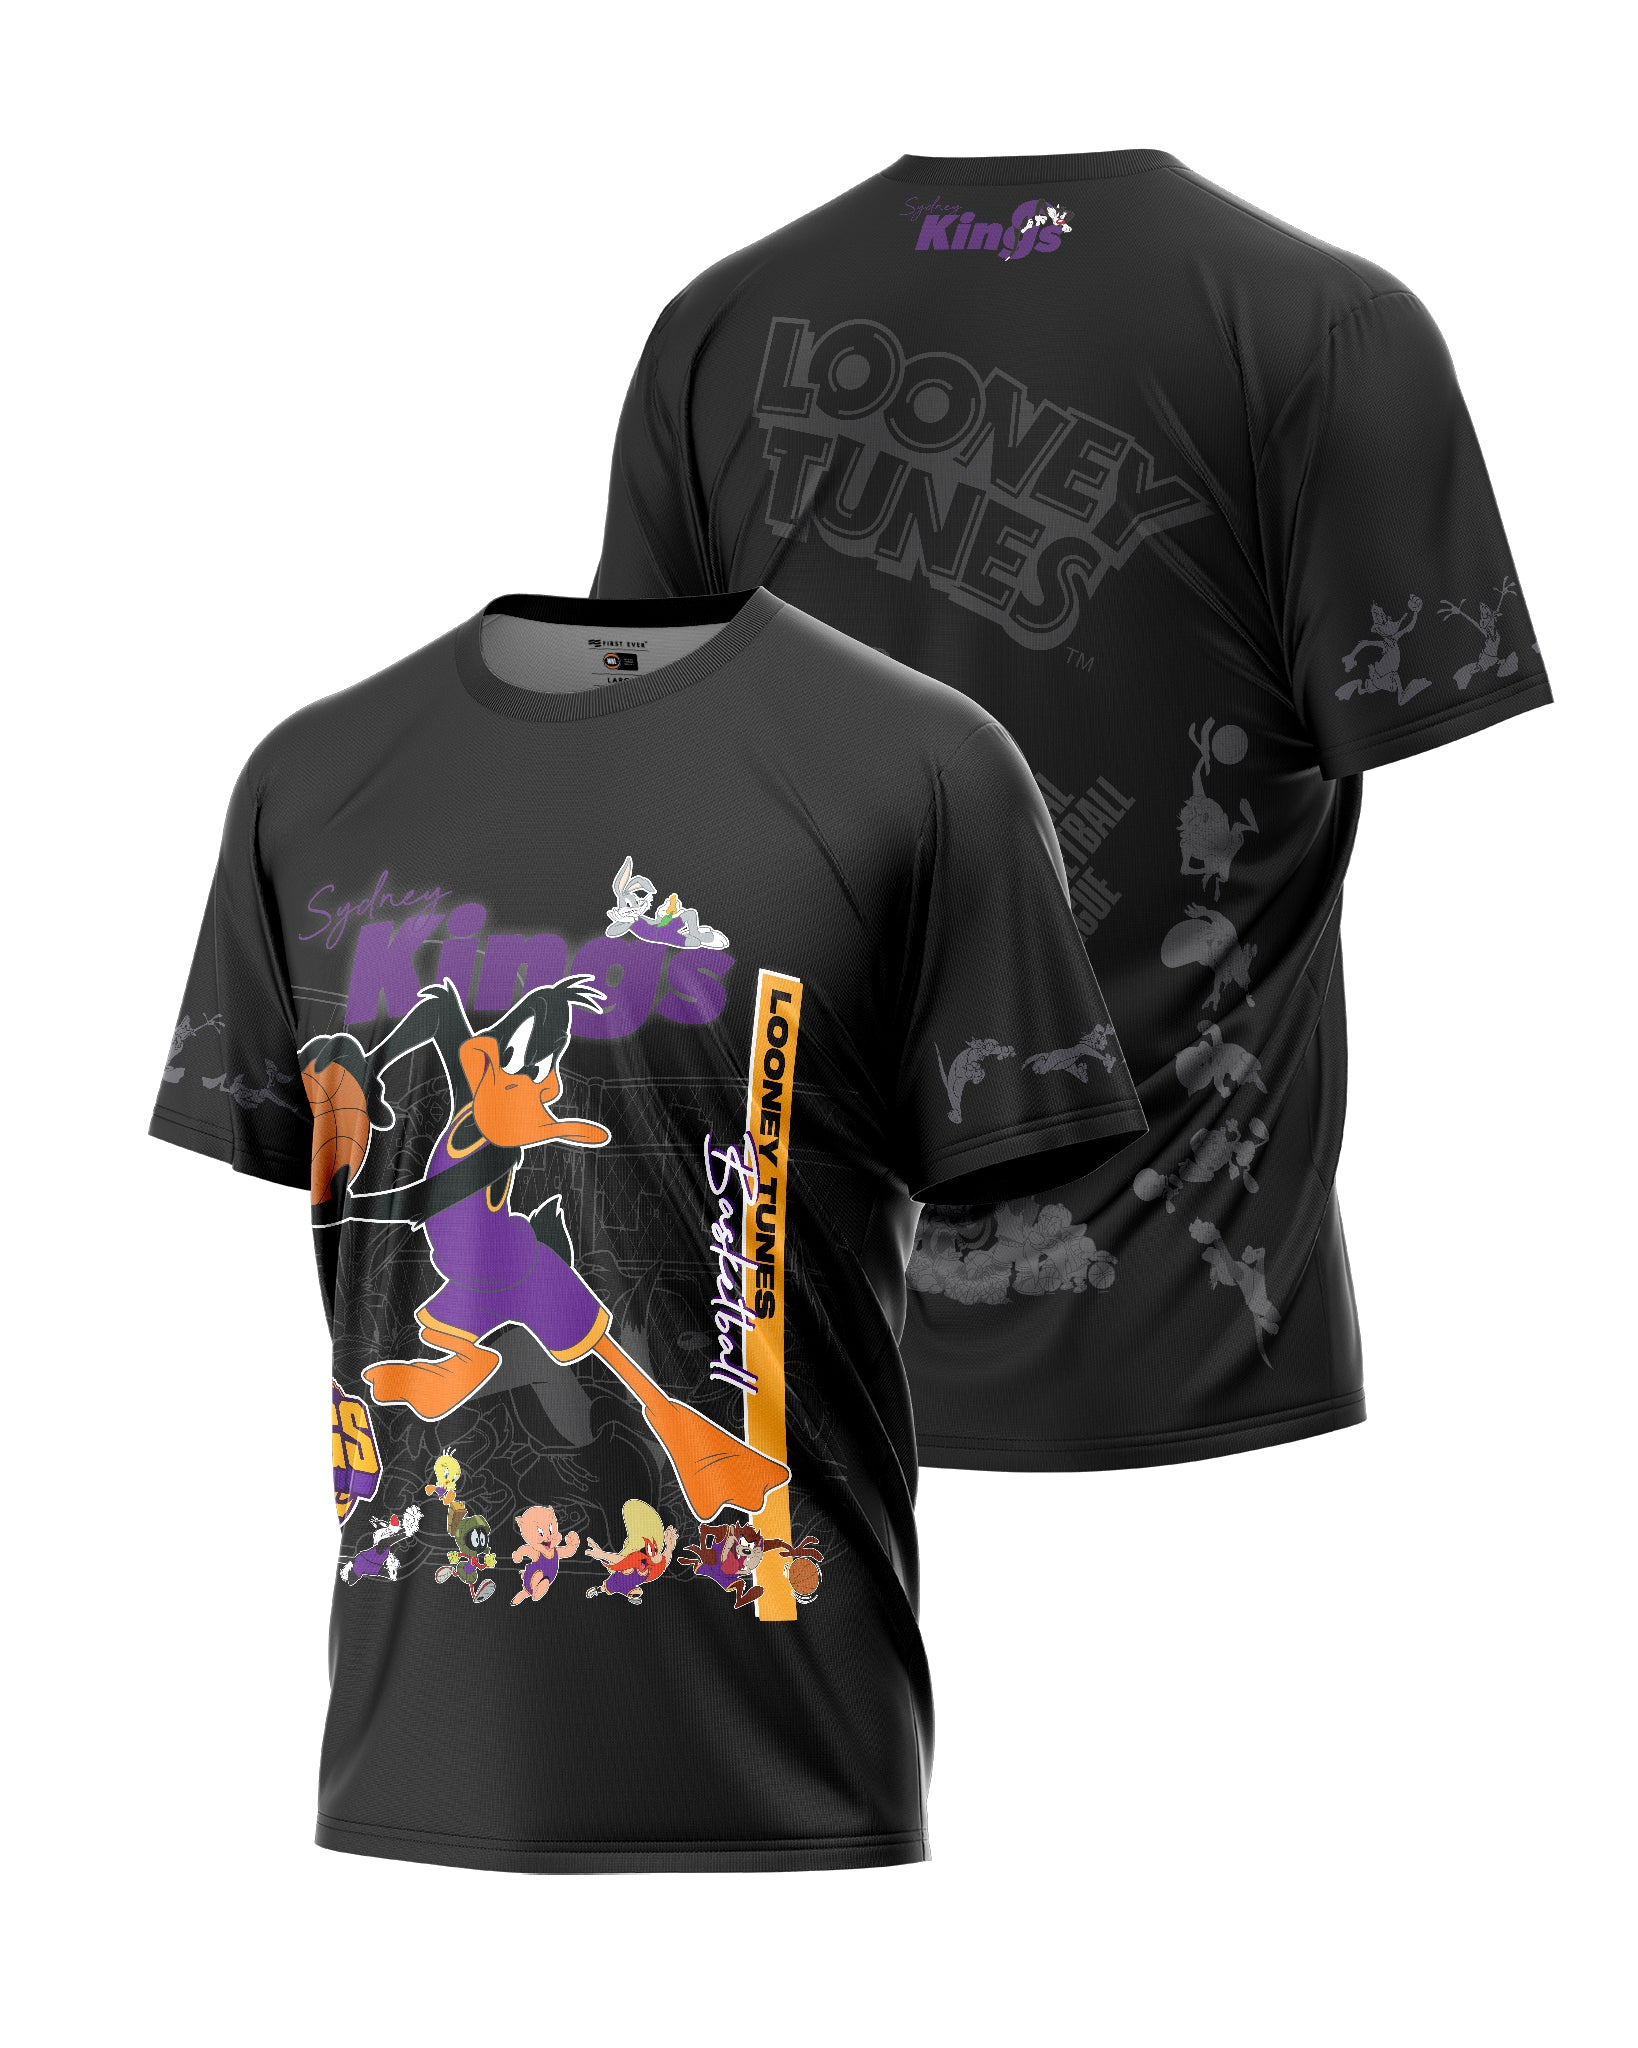 Sydney Kings 20/21 Looney Tunes Mono Tee